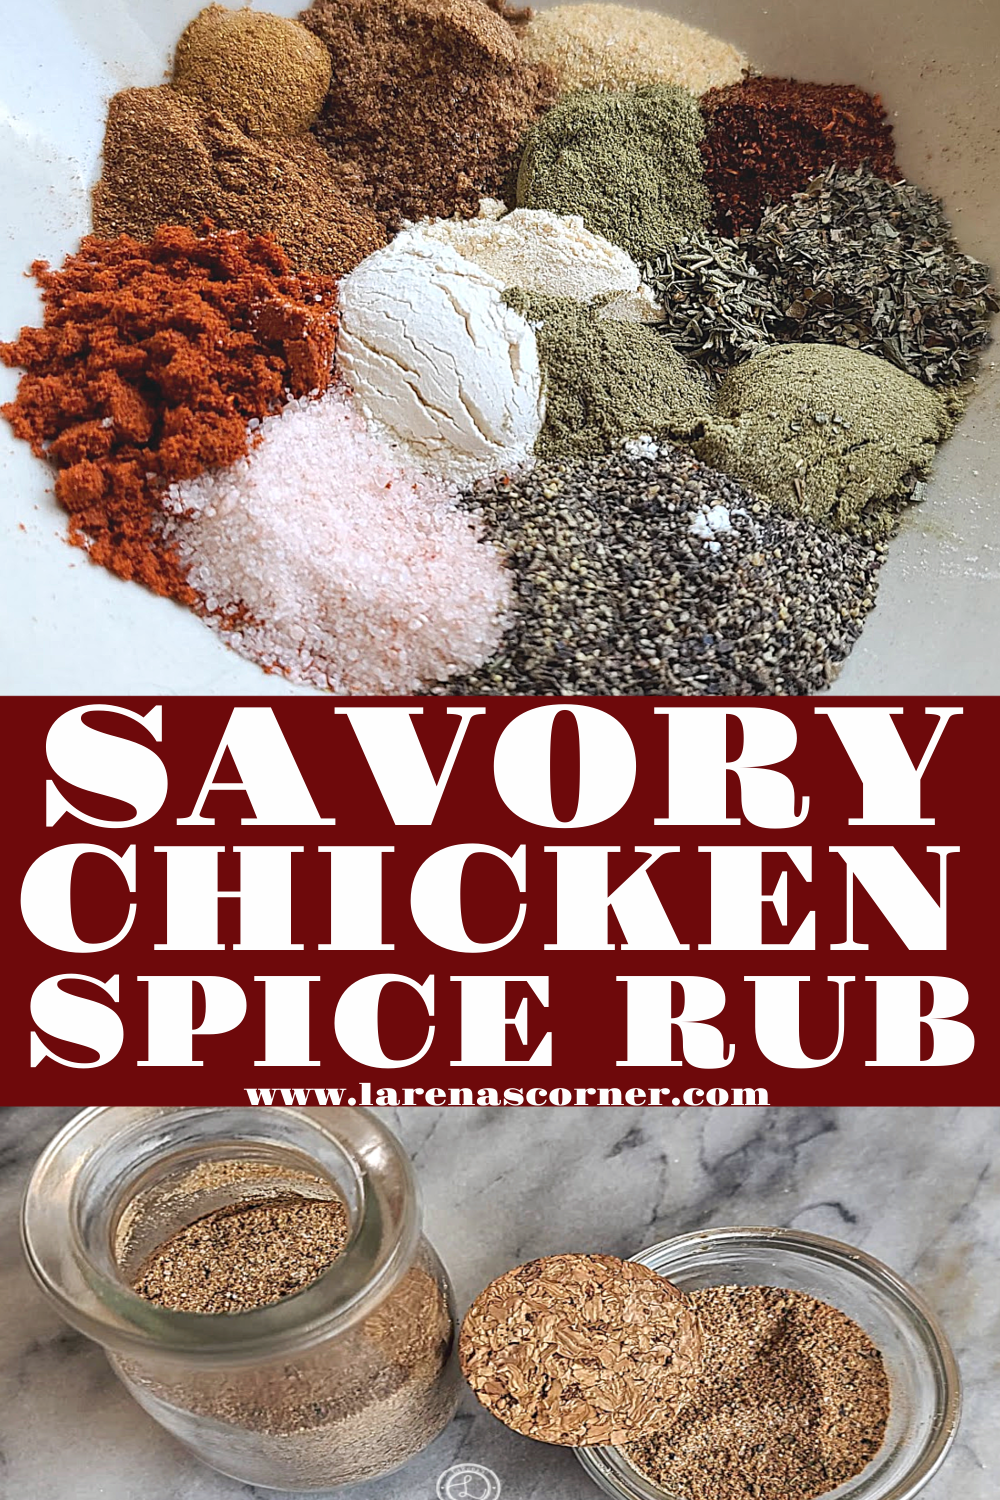 Savory Chicken Spice Rub. 2 pictures. One before being mixed. One after being mixed.